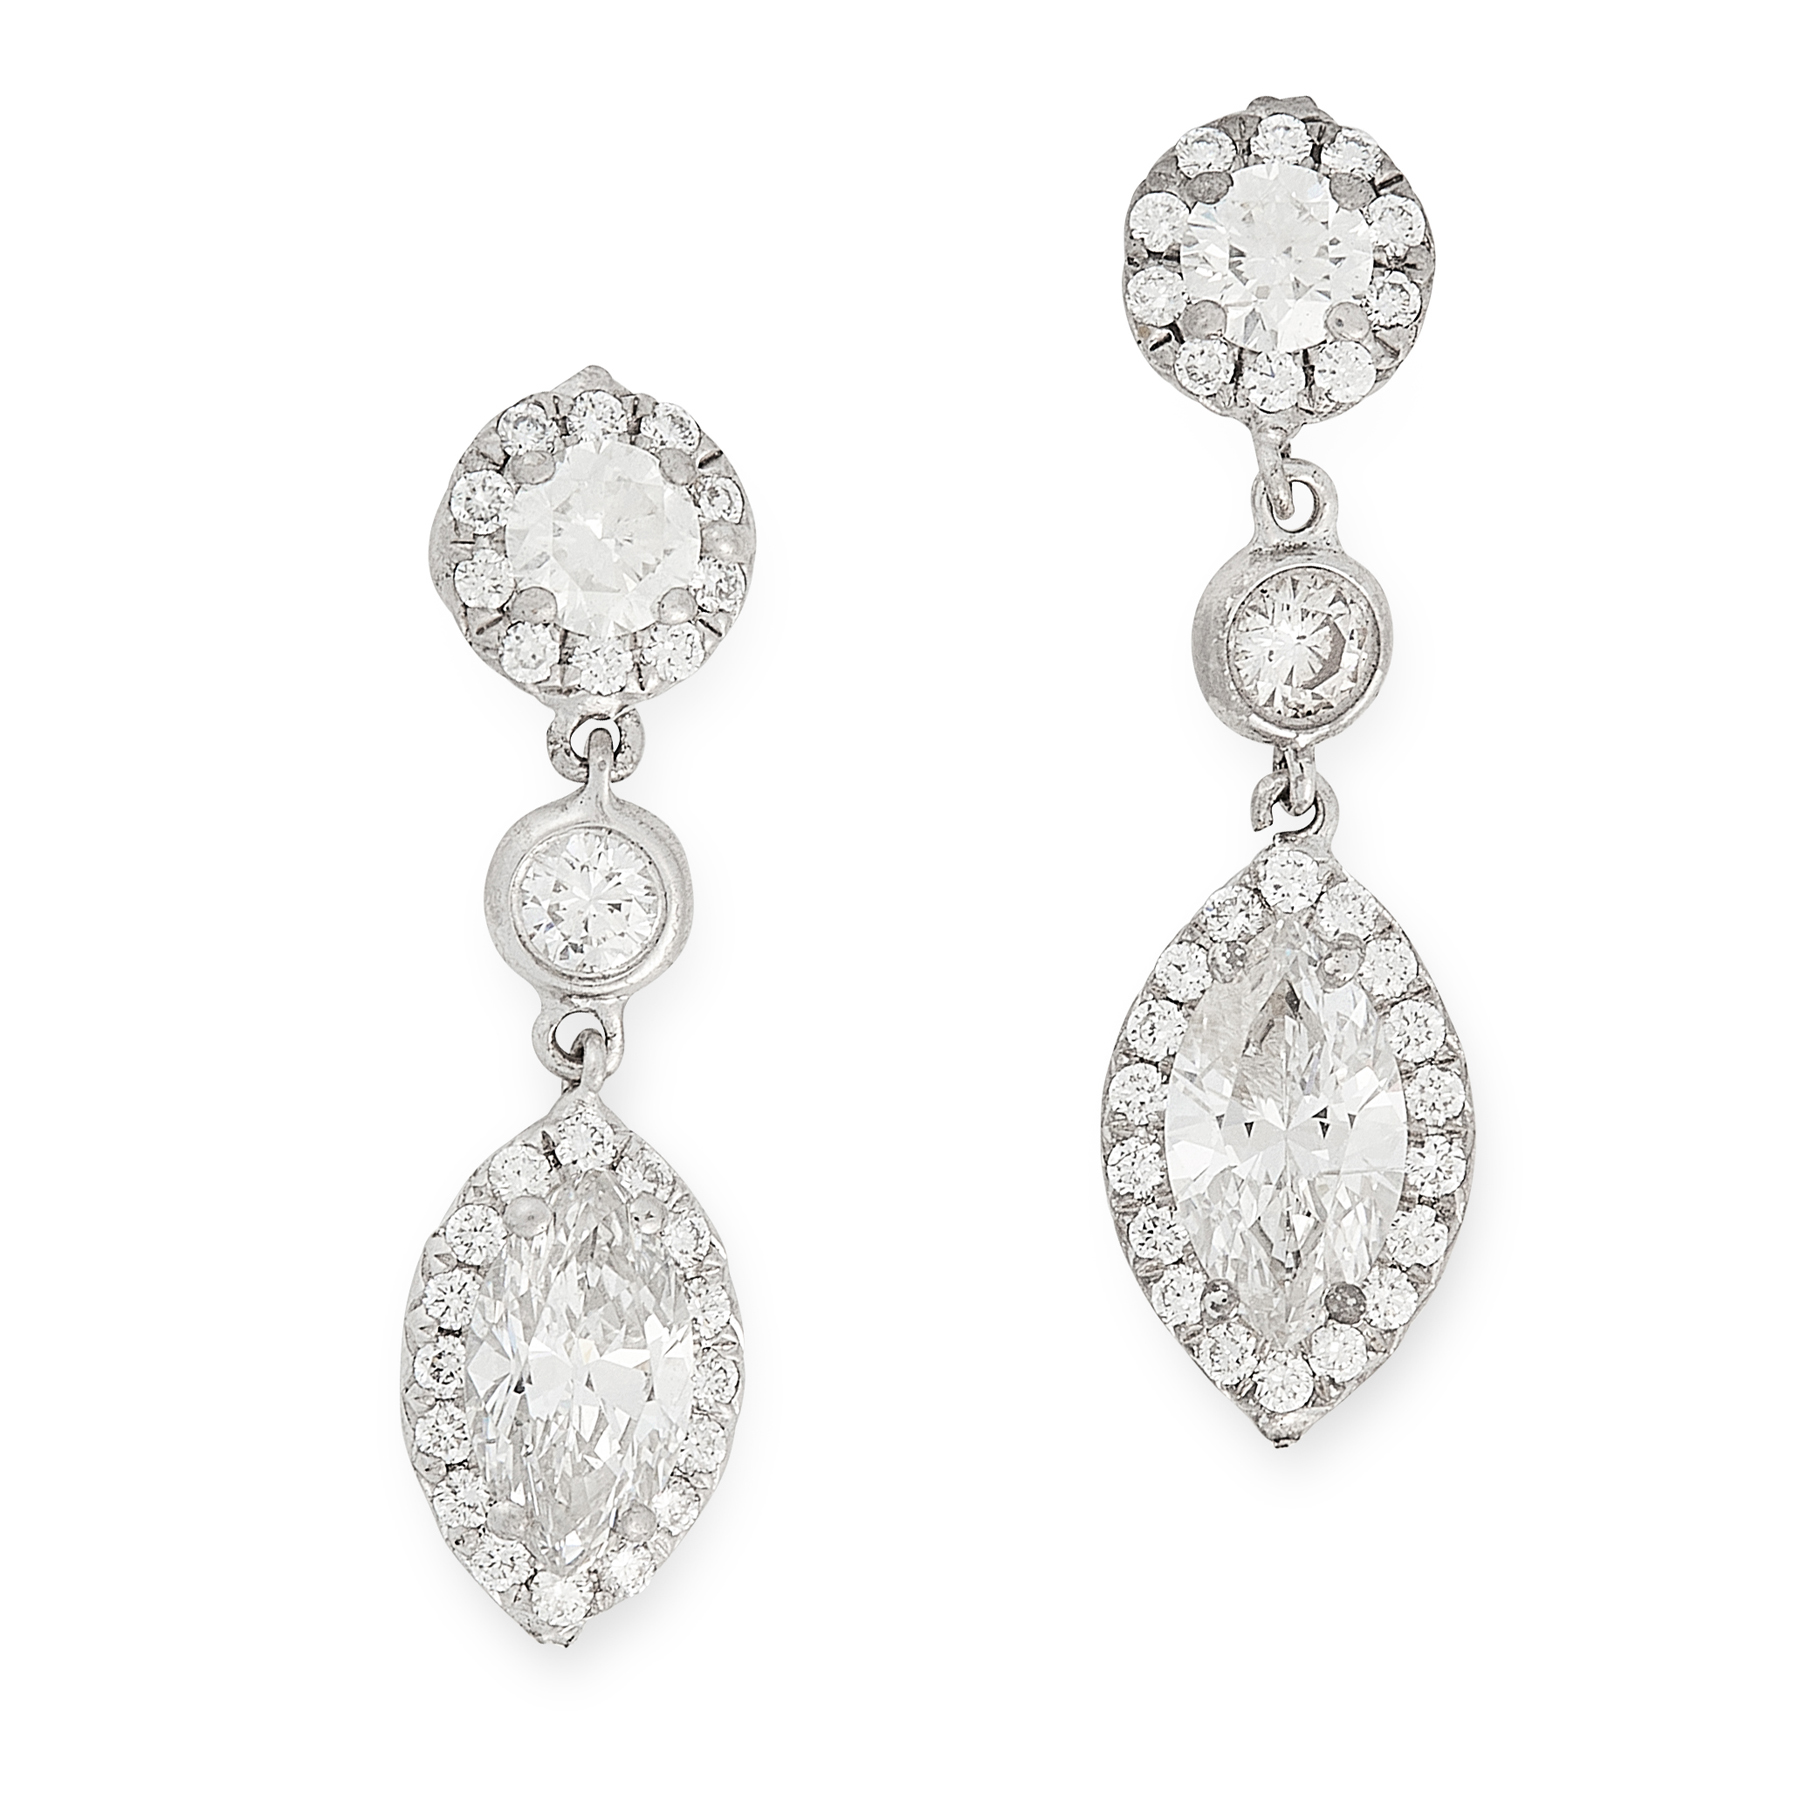 A PAIR OF DIAMOND DROP EARRINGS in 18ct white gold, each set with a marquise cut diamond of 0.55 and